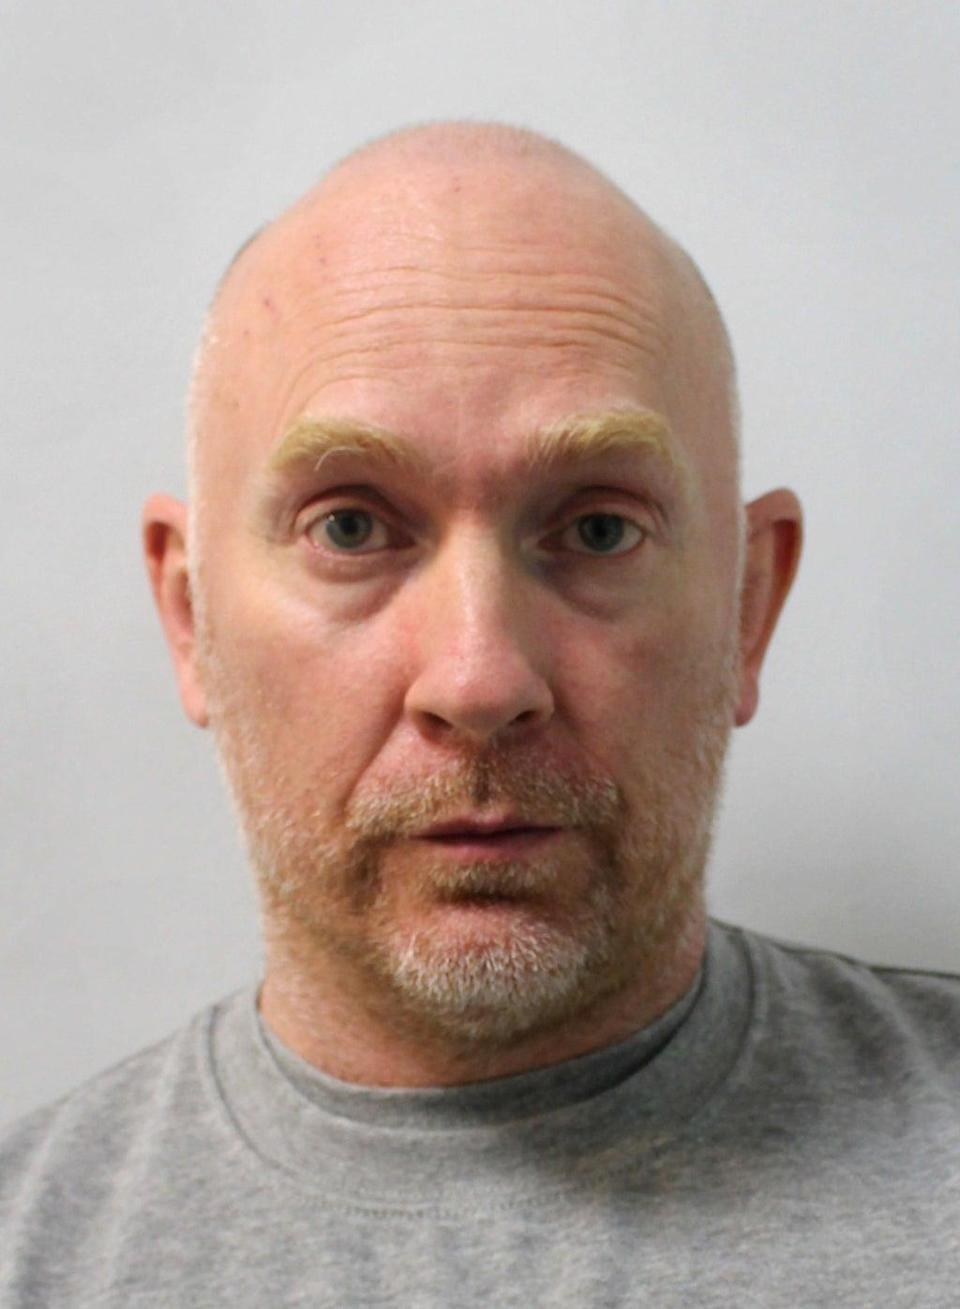 Wayne Couzens was a serving policeman at the time and he used his warrant card to falsely arrest Ms Everard to abduct her (Met Police/PA) (PA Media)